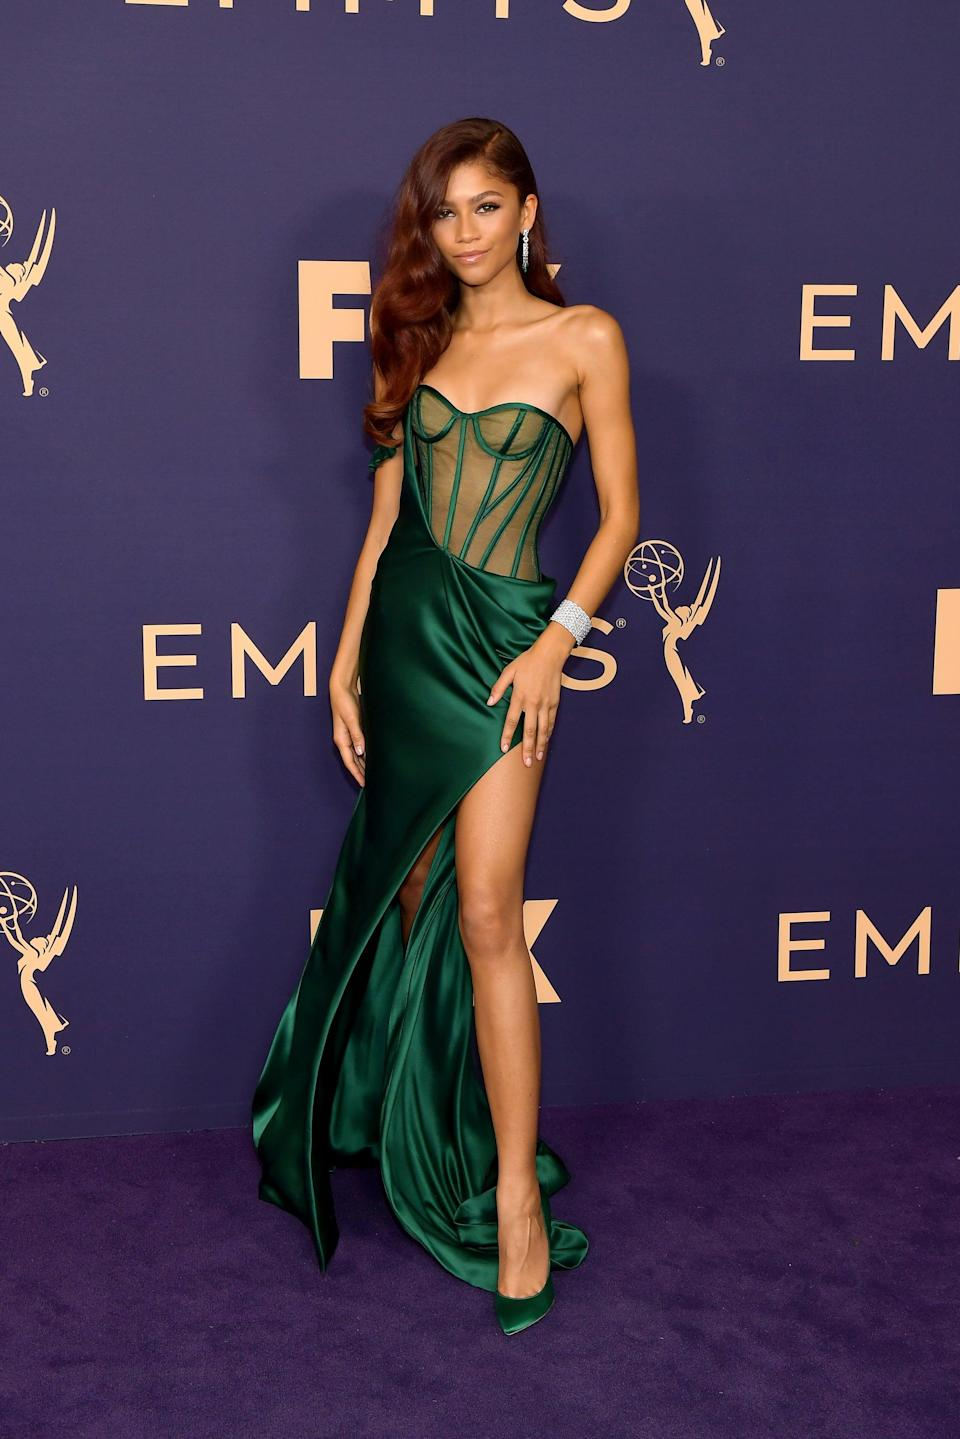 """<p><a class=""""link rapid-noclick-resp"""" href=""""https://www.popsugar.co.uk/Zendaya"""" rel=""""nofollow noopener"""" target=""""_blank"""" data-ylk=""""slk:Zendaya"""">Zendaya</a> has sought style inspiration from superheroes <em>and</em> villains. To attend the 2019 Emmy Awards, she <a href=""""https://www.popsugar.com/fashion/zendaya-vera-wang-dress-at-the-2019-emmys-46659112"""" class=""""link rapid-noclick-resp"""" rel=""""nofollow noopener"""" target=""""_blank"""" data-ylk=""""slk:wore an emerald Vera Wang corset dress"""">wore an emerald Vera Wang corset dress</a> with visible boning. Though this red carpet look understandably conjured up comparisons to <strong>The Little Mermaid</strong>'s Ariel, Law was actually inspired by <a class=""""link rapid-noclick-resp"""" href=""""https://www.popsugar.co.uk/Uma-Thurman"""" rel=""""nofollow noopener"""" target=""""_blank"""" data-ylk=""""slk:Uma Thurman"""">Uma Thurman</a>'s portrayal of Poison Ivy in <strong>Batman &amp; Robin</strong>, and he shared several stills from the 1997 film to Instagram Stories the day of the award show.</p>"""